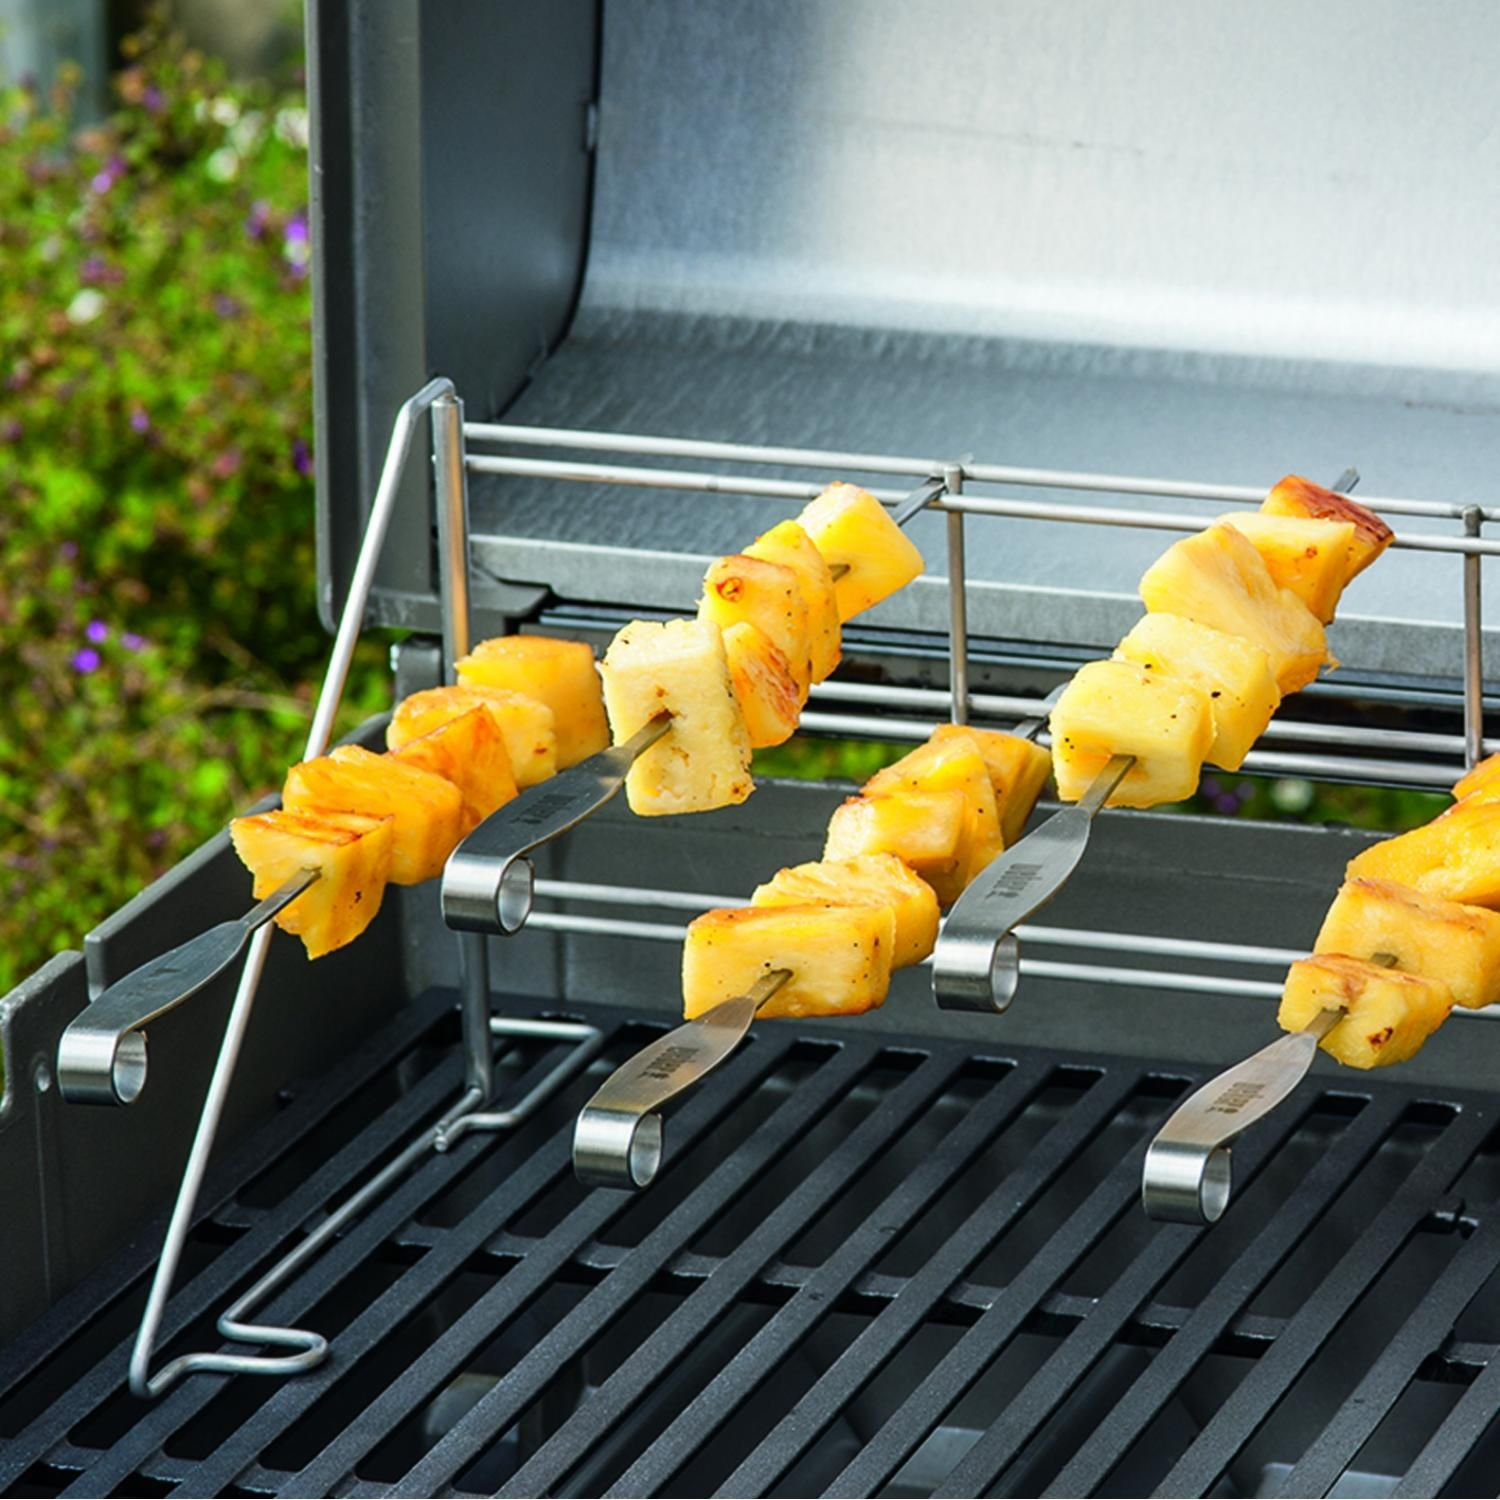 Weber 7618 Stainless Steel Bbq Skewers 4 Pieces Bbqguys Bbq Skewers Stainless Steel Bbq Skewers